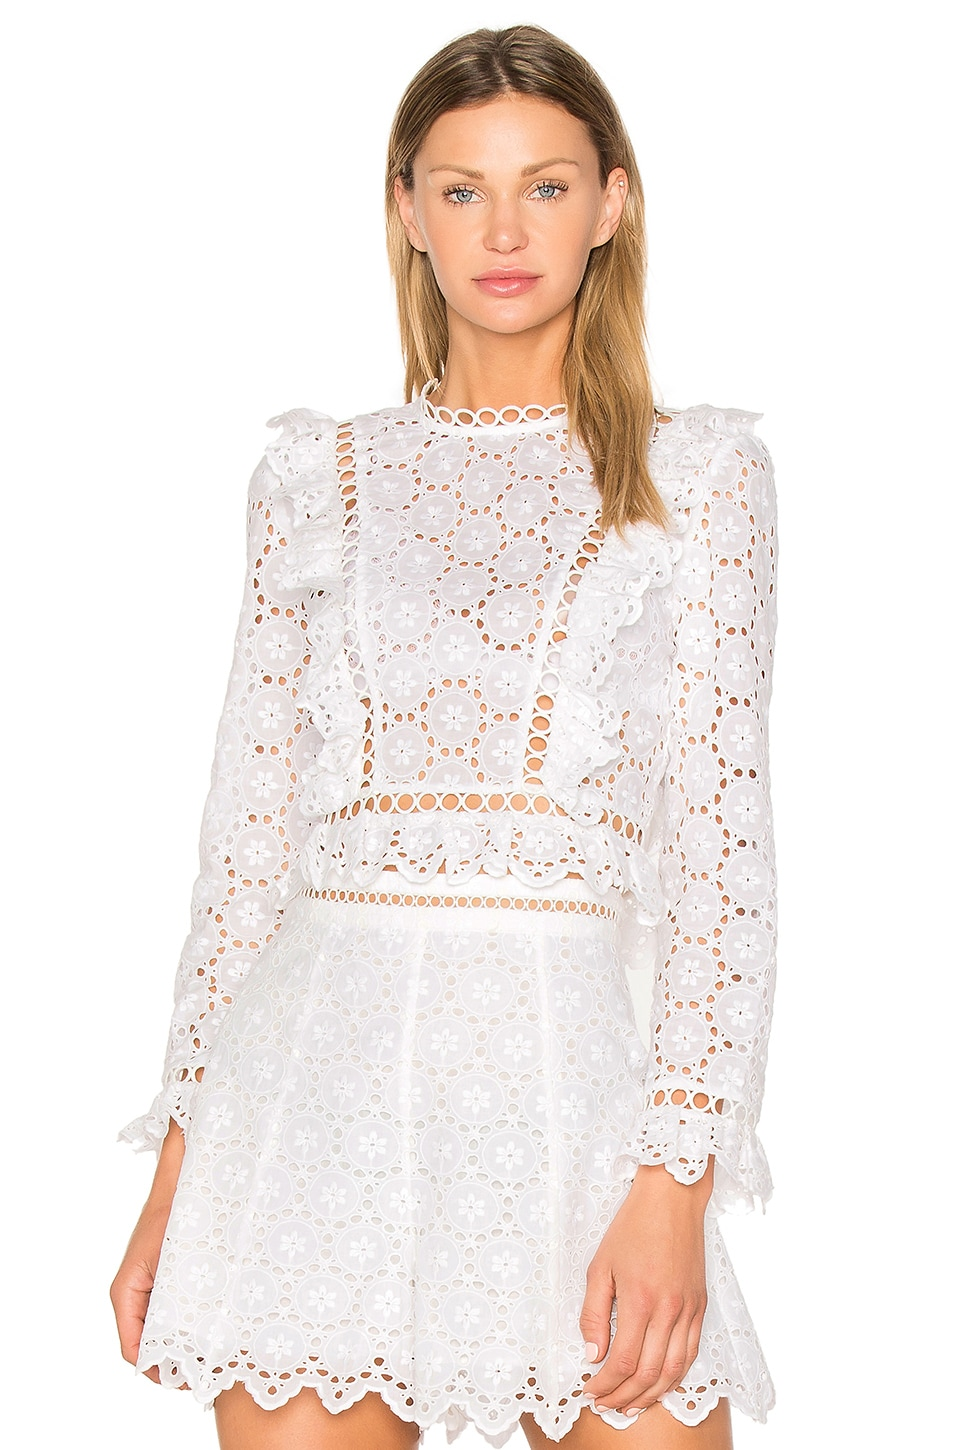 Zimmermann Divinity Wheel Frill Top in Ivory